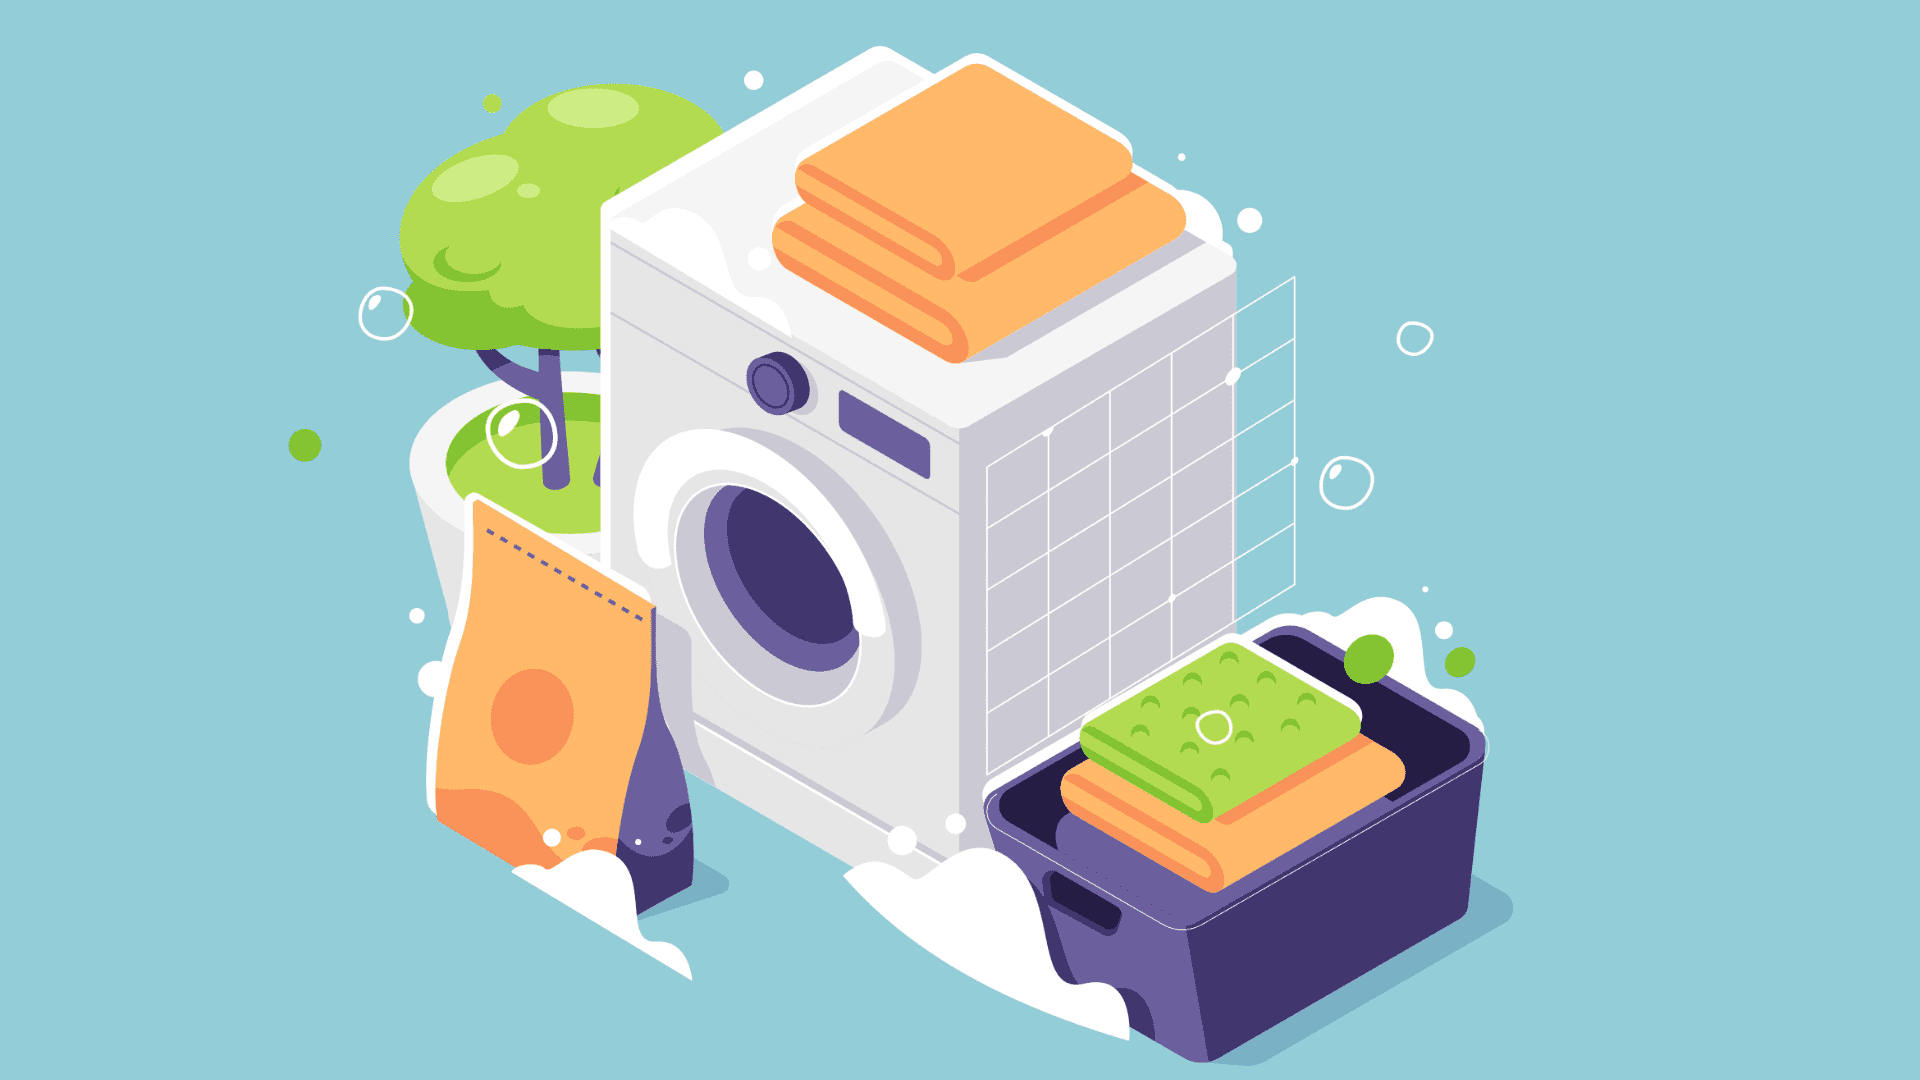 Dry cleaner and laundry app